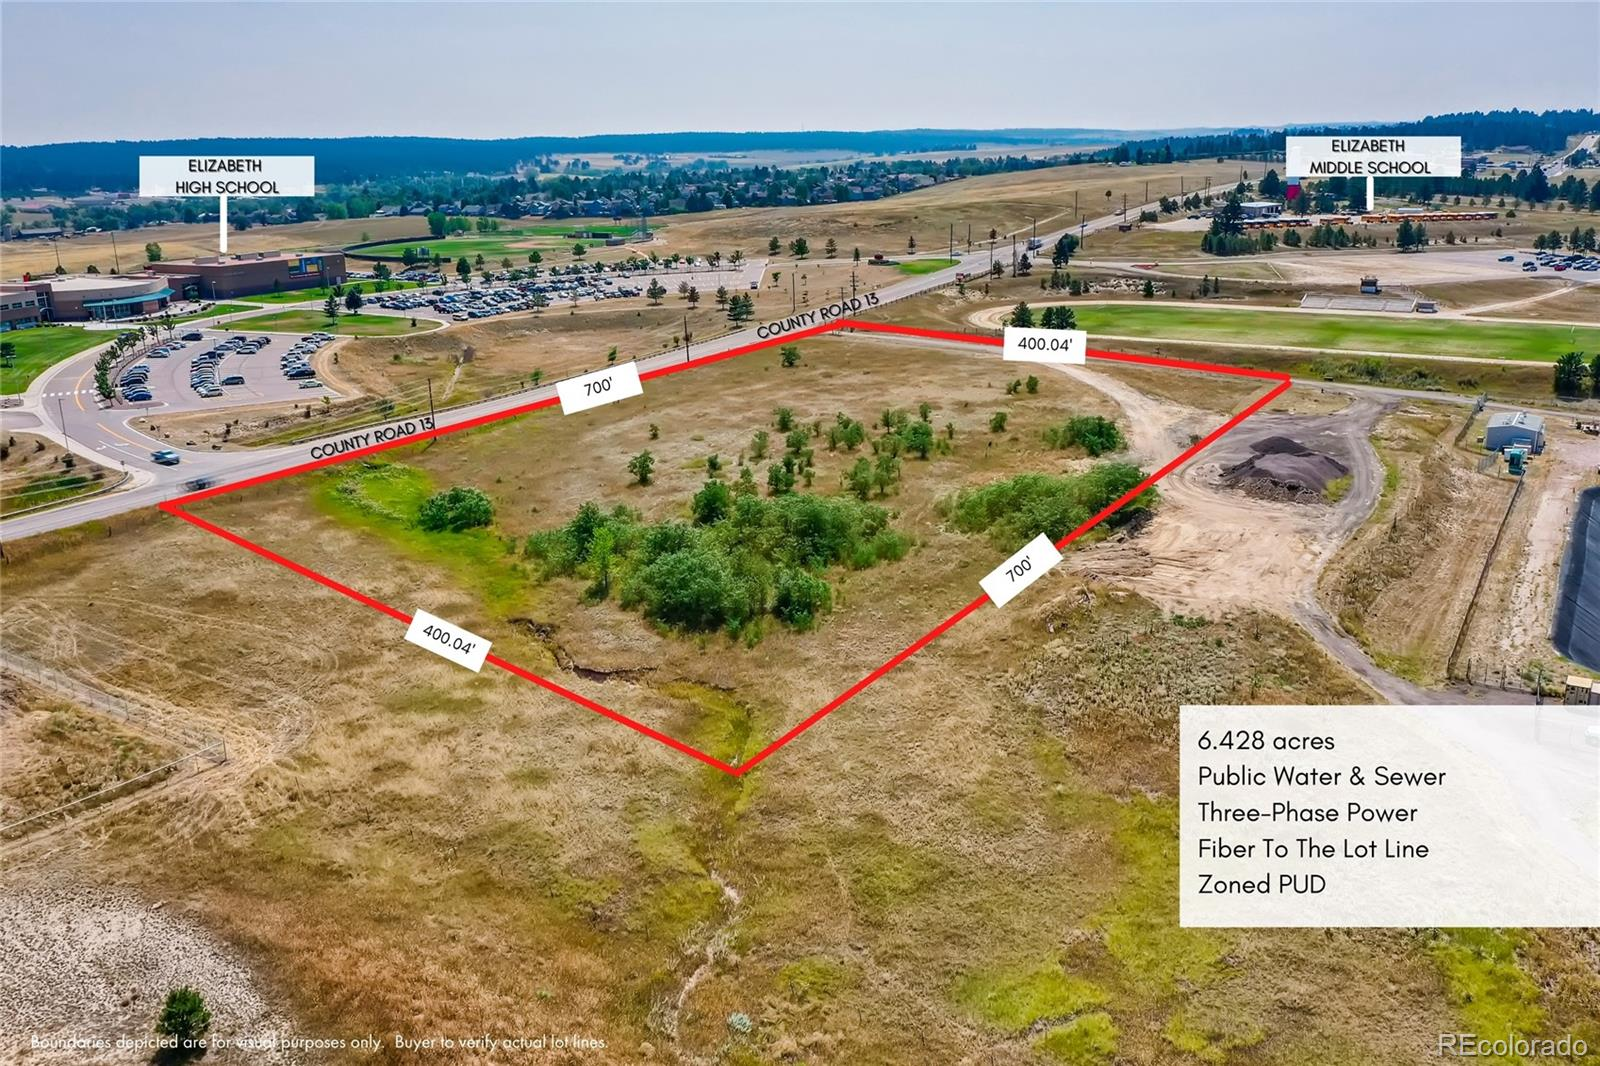 Incredible development opportunity in one of Colorado's fastest growing towns - Elizabeth, CO.  6.48 acres currently zoned PLANNED UNIT DEVELOPMENT, which allows for a MULTITUDE OF USES ranging from RESIDENTIAL, COMMERCIAL, RESTAURANT, RETAIL, the possibilities are endless! You can build a CAR WASH, CO-WORKING SPACE, LIQUOR STORE, GROCERY STORE, STORAGE FACILITY, EVEN POTENTIALLY A CONVENIENCE STORE. The parcel is on PUBLIC WATER & SEWER. Located DIRECTLY ACROSS THE STREET FROM ELIZABETH HIGH SCHOOL and NEXT DOOR TO ELIZABETH MIDDLE SCHOOL meaning you have well over 1,200 STUDENTS & STAFF WITHIN WALKING DISTANCE. What n ideal location for a retail strip! Located just 2500 ft North of the HWY 86 & CR 13 intersection, which currently carries 12,000 cars per day, and is anticipated to carry over 60,000 cars per day by 2040. INVEST IN THE FUTURE!